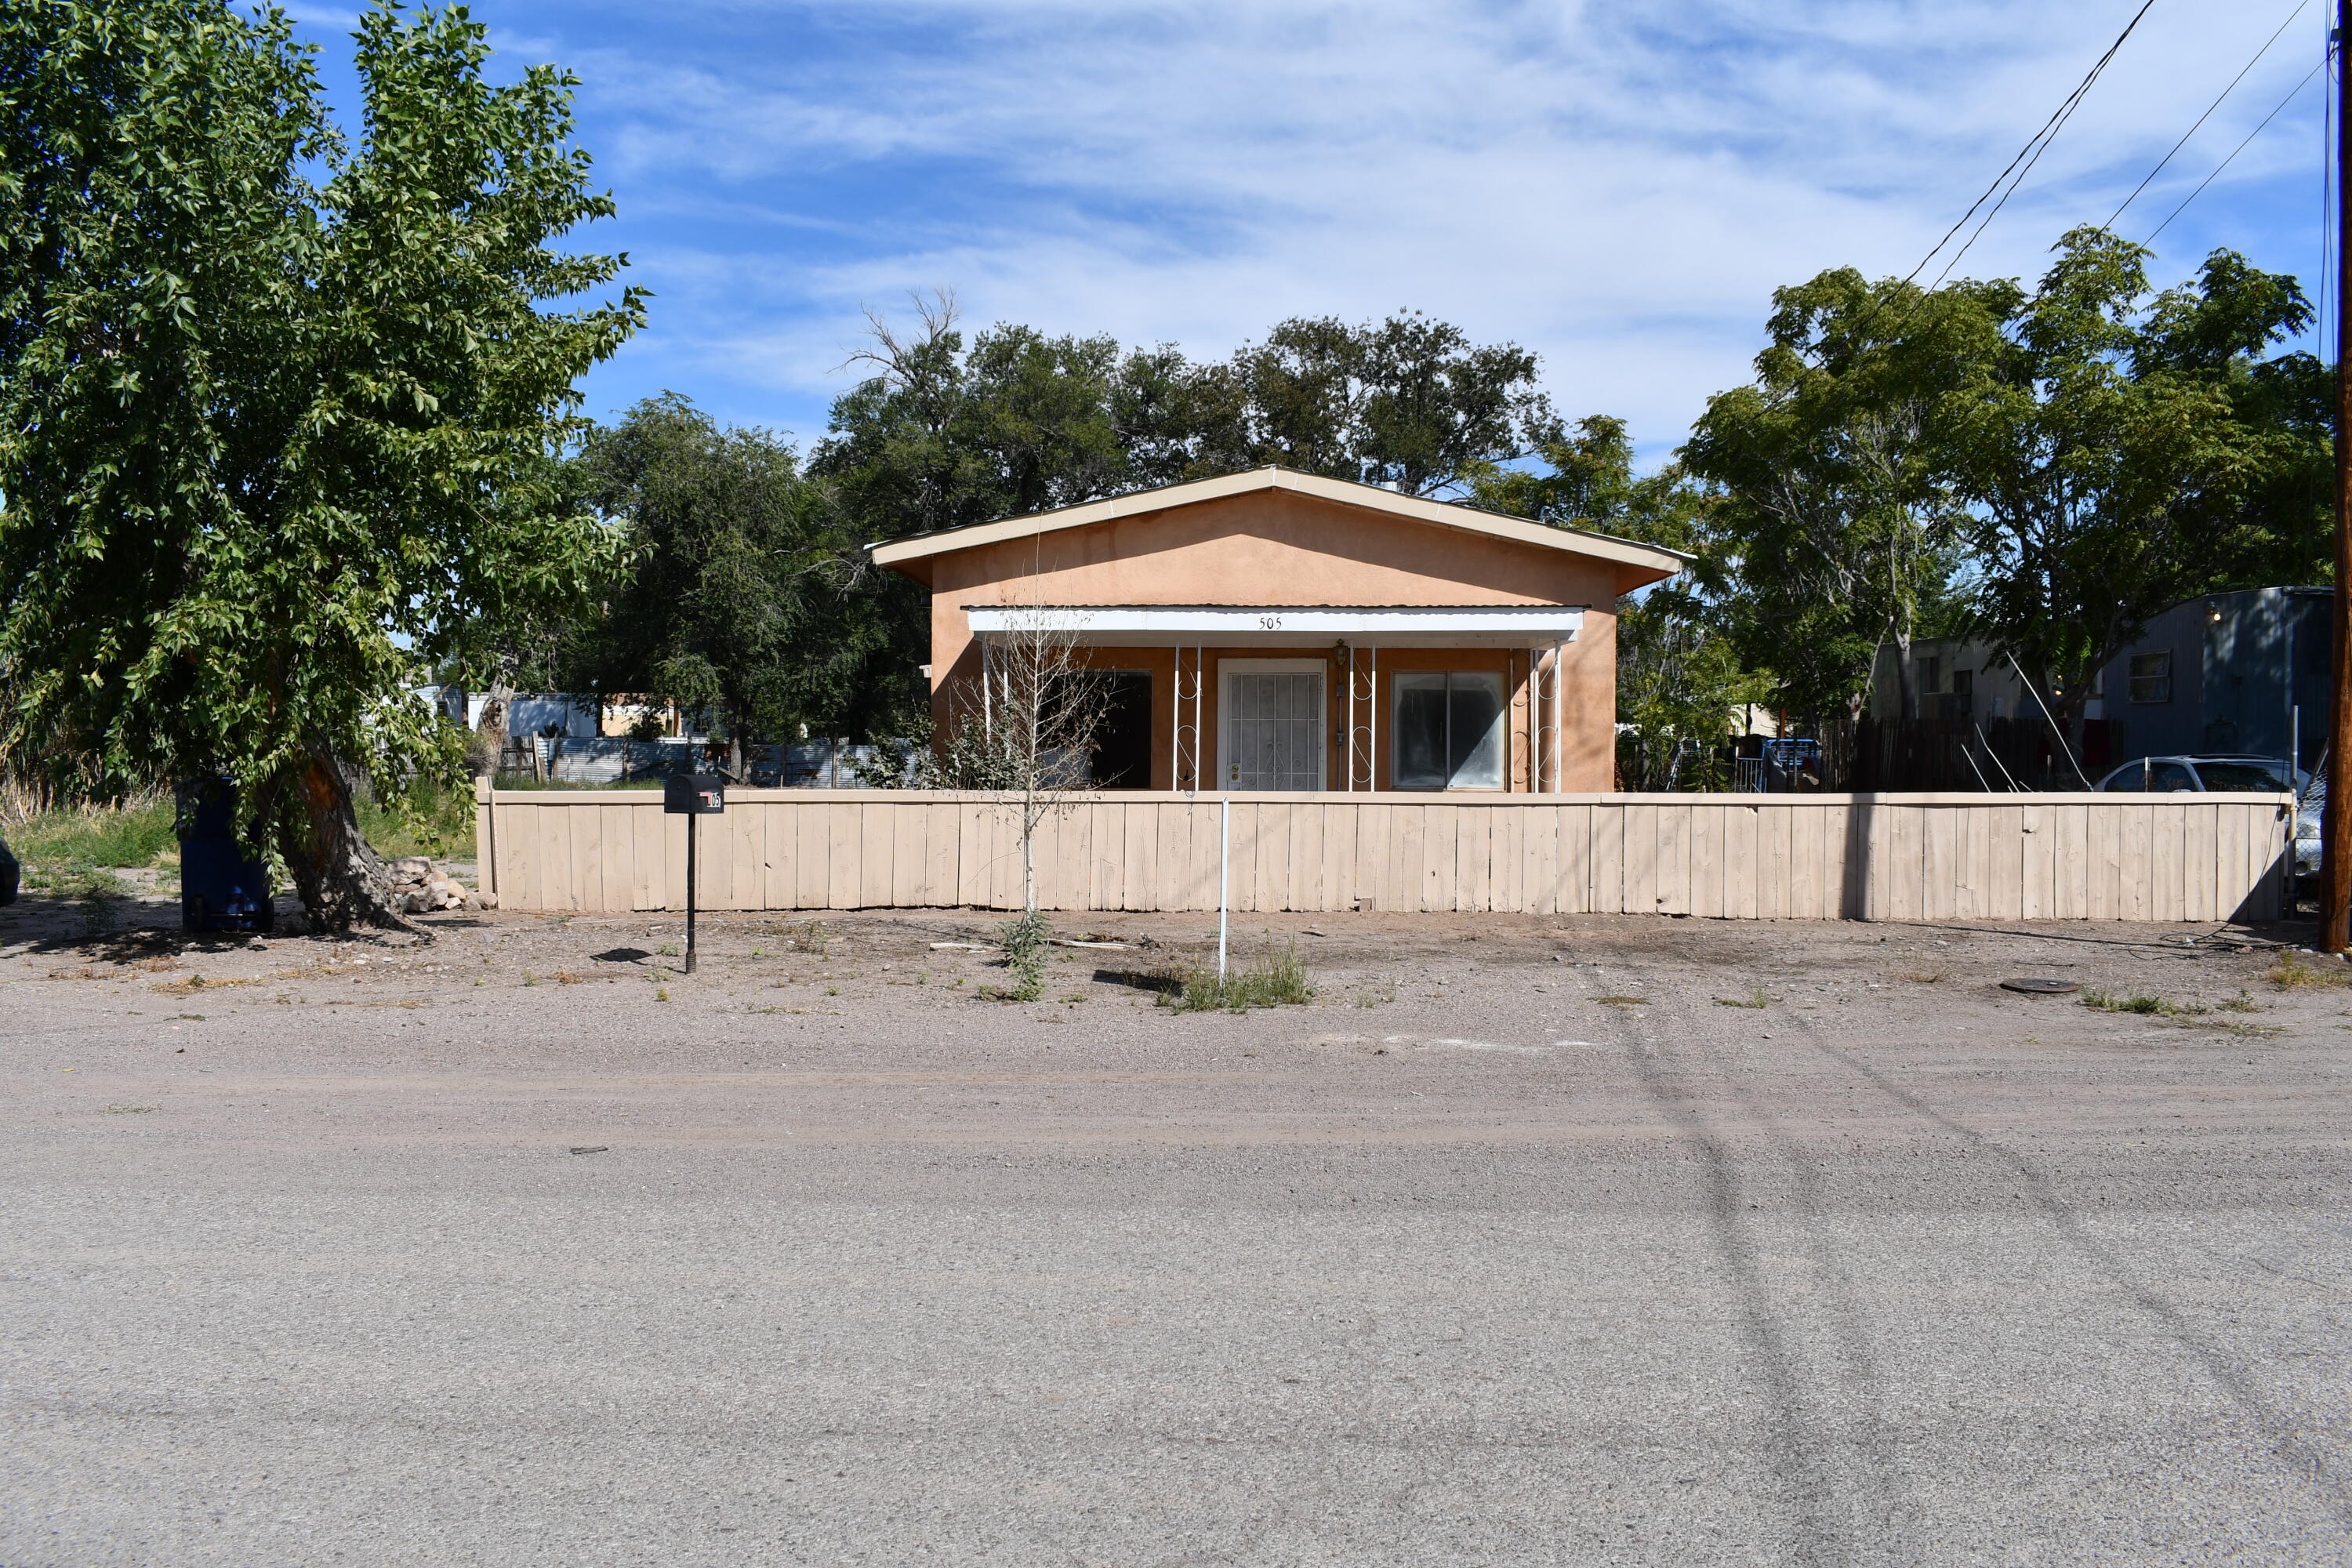 Great Duplex near collage ready to rent out, or have a guest house/ mother in law suit. Great potential to generate extra income by living in one unit and renting the other. Easy access to freeway and close to Stores. Plenty of yard access for a RV with hook up.